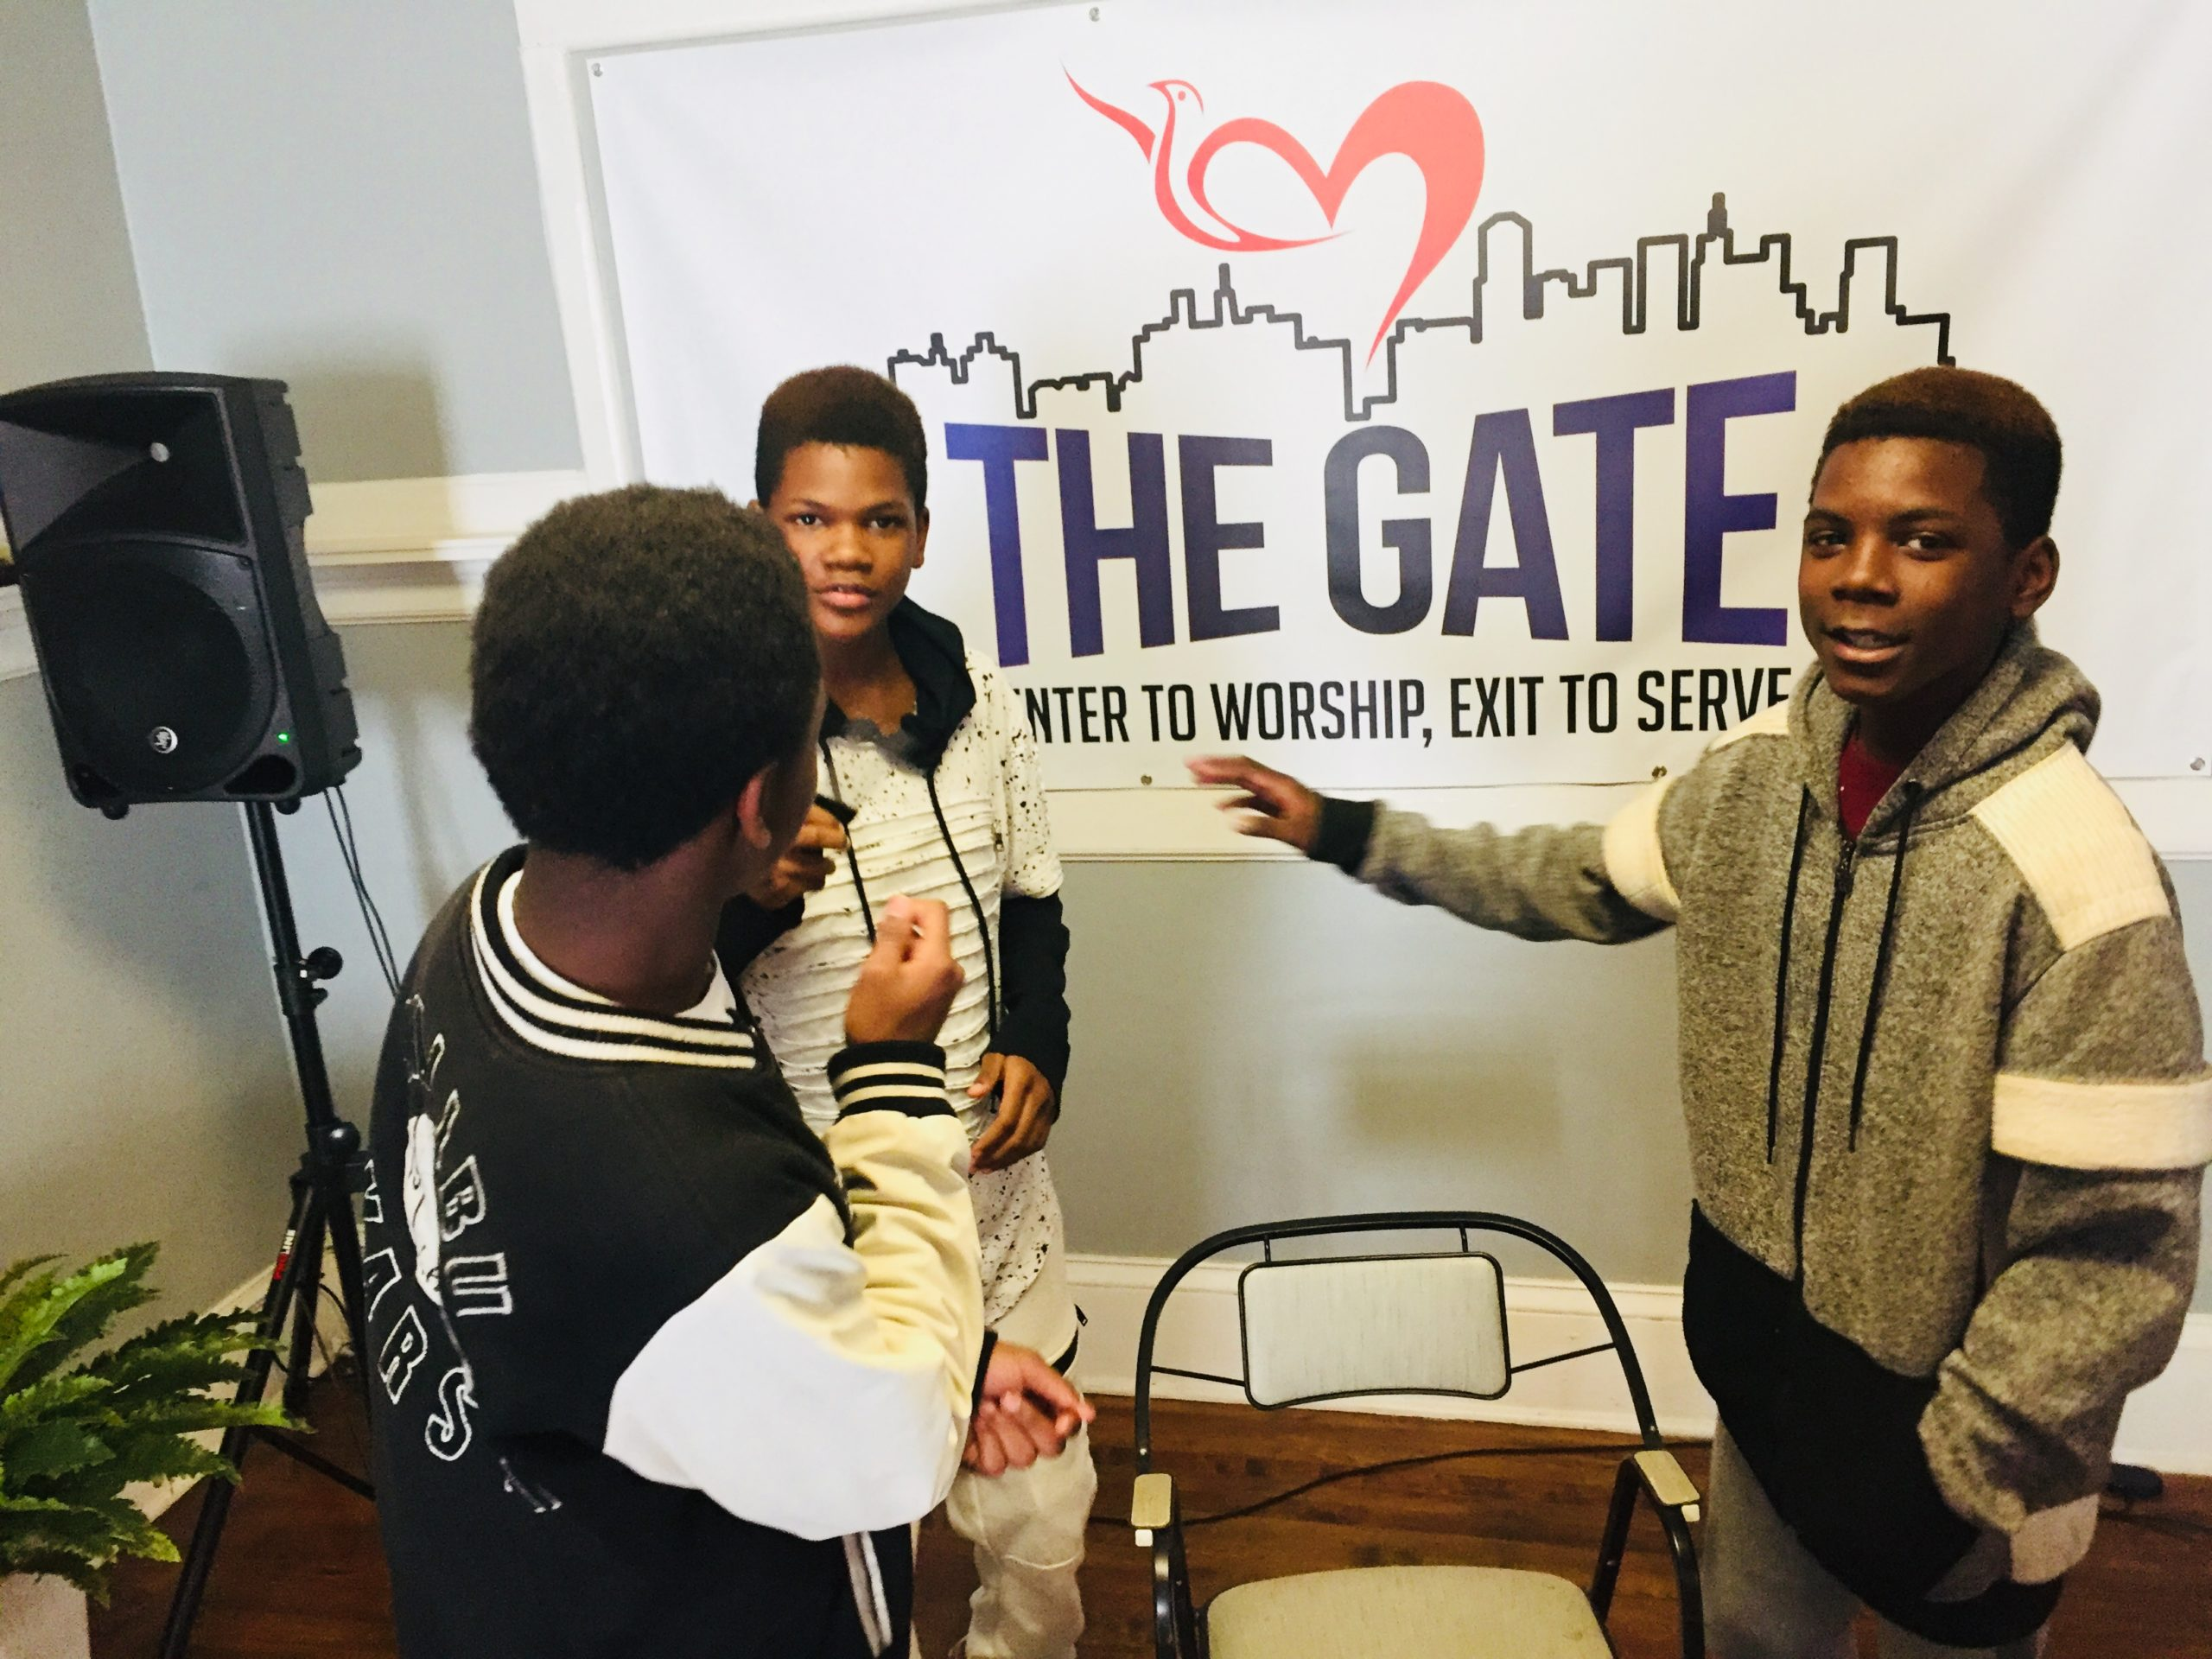 The Gate); ?>